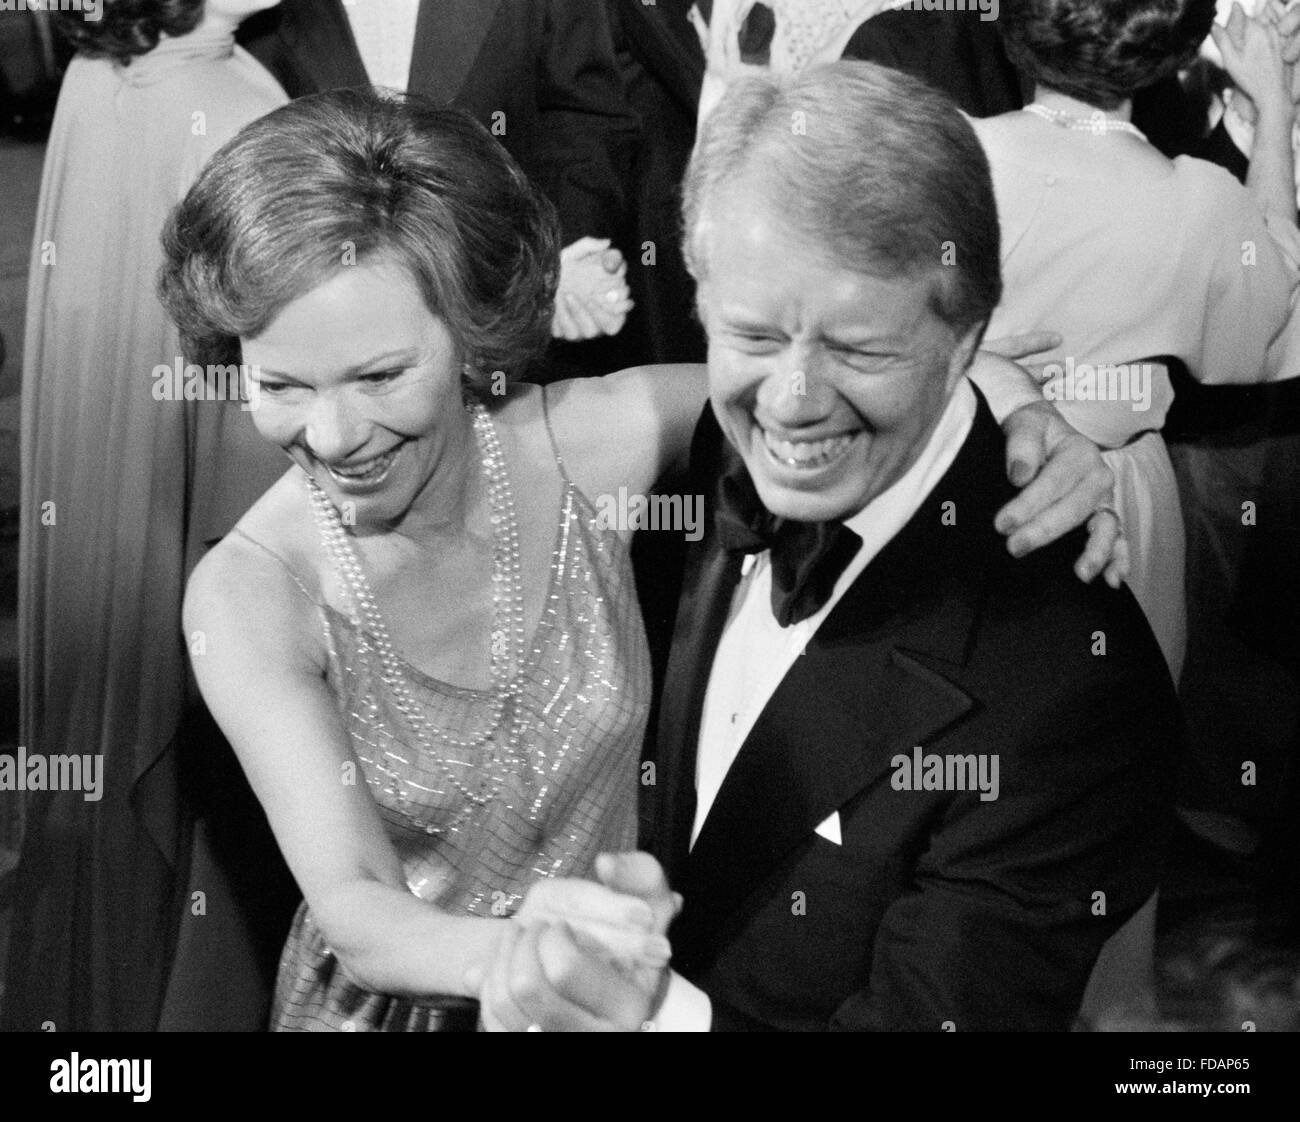 Jimmy Carter and his wife, Rosalynn Carter, dancing at a White House Congressional Ball, Washington, DC, December - Stock Image